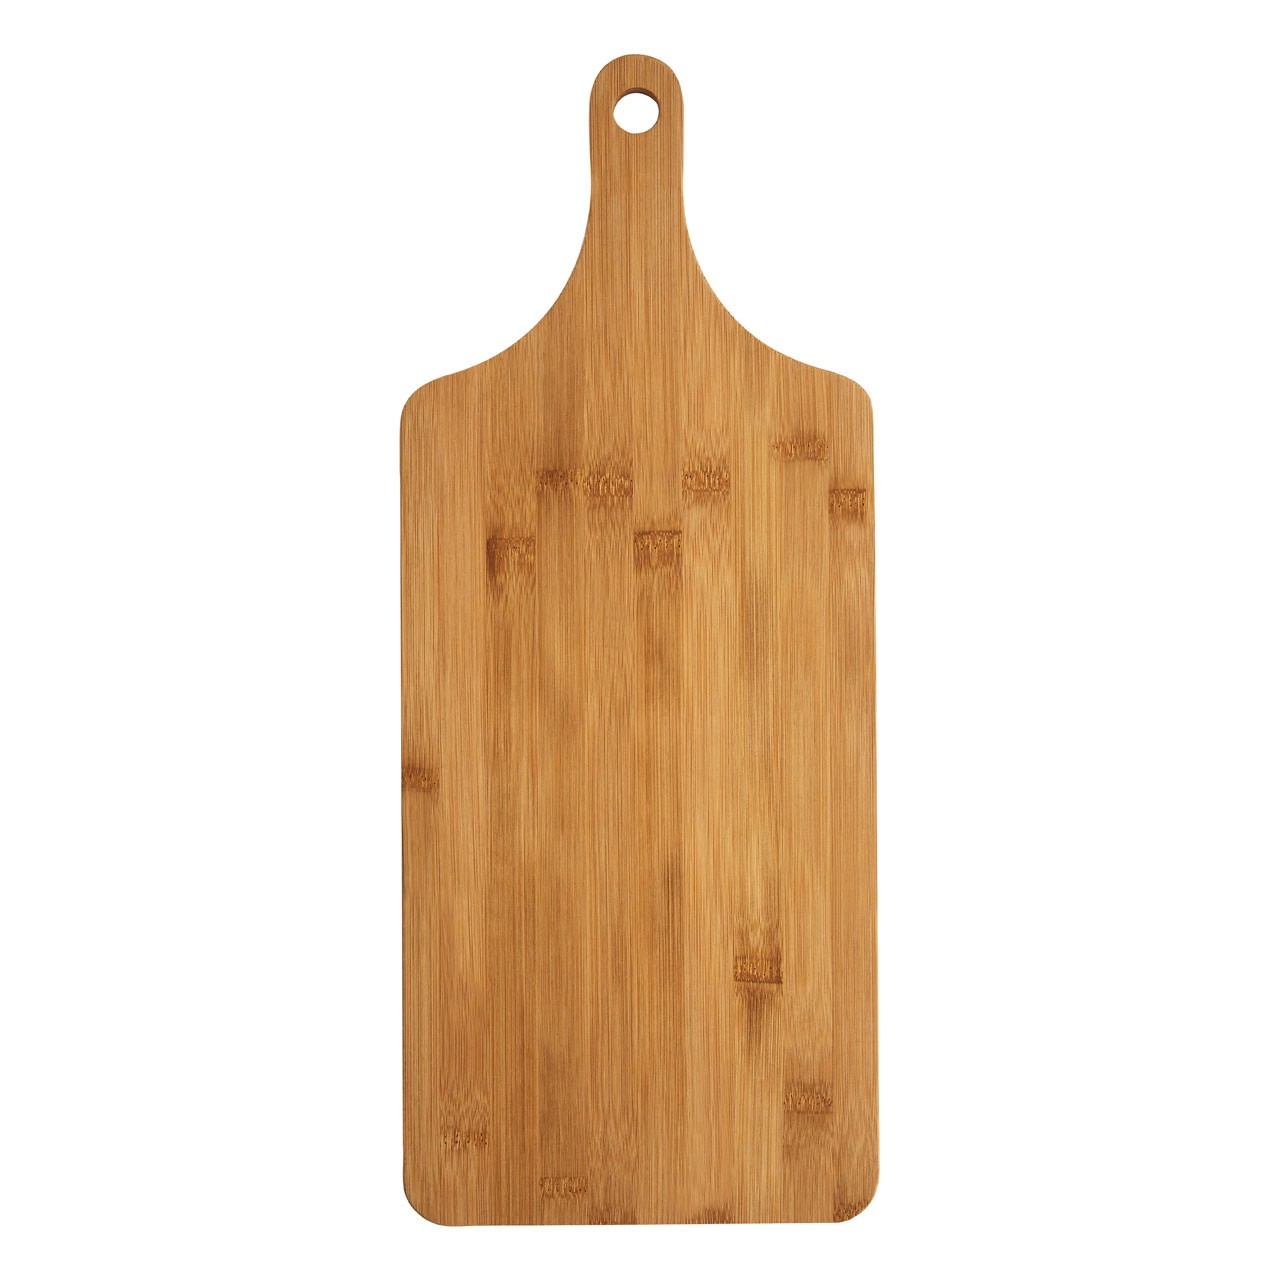 Paddle Chopping Board Hygienic Antimicrobial Bamboo